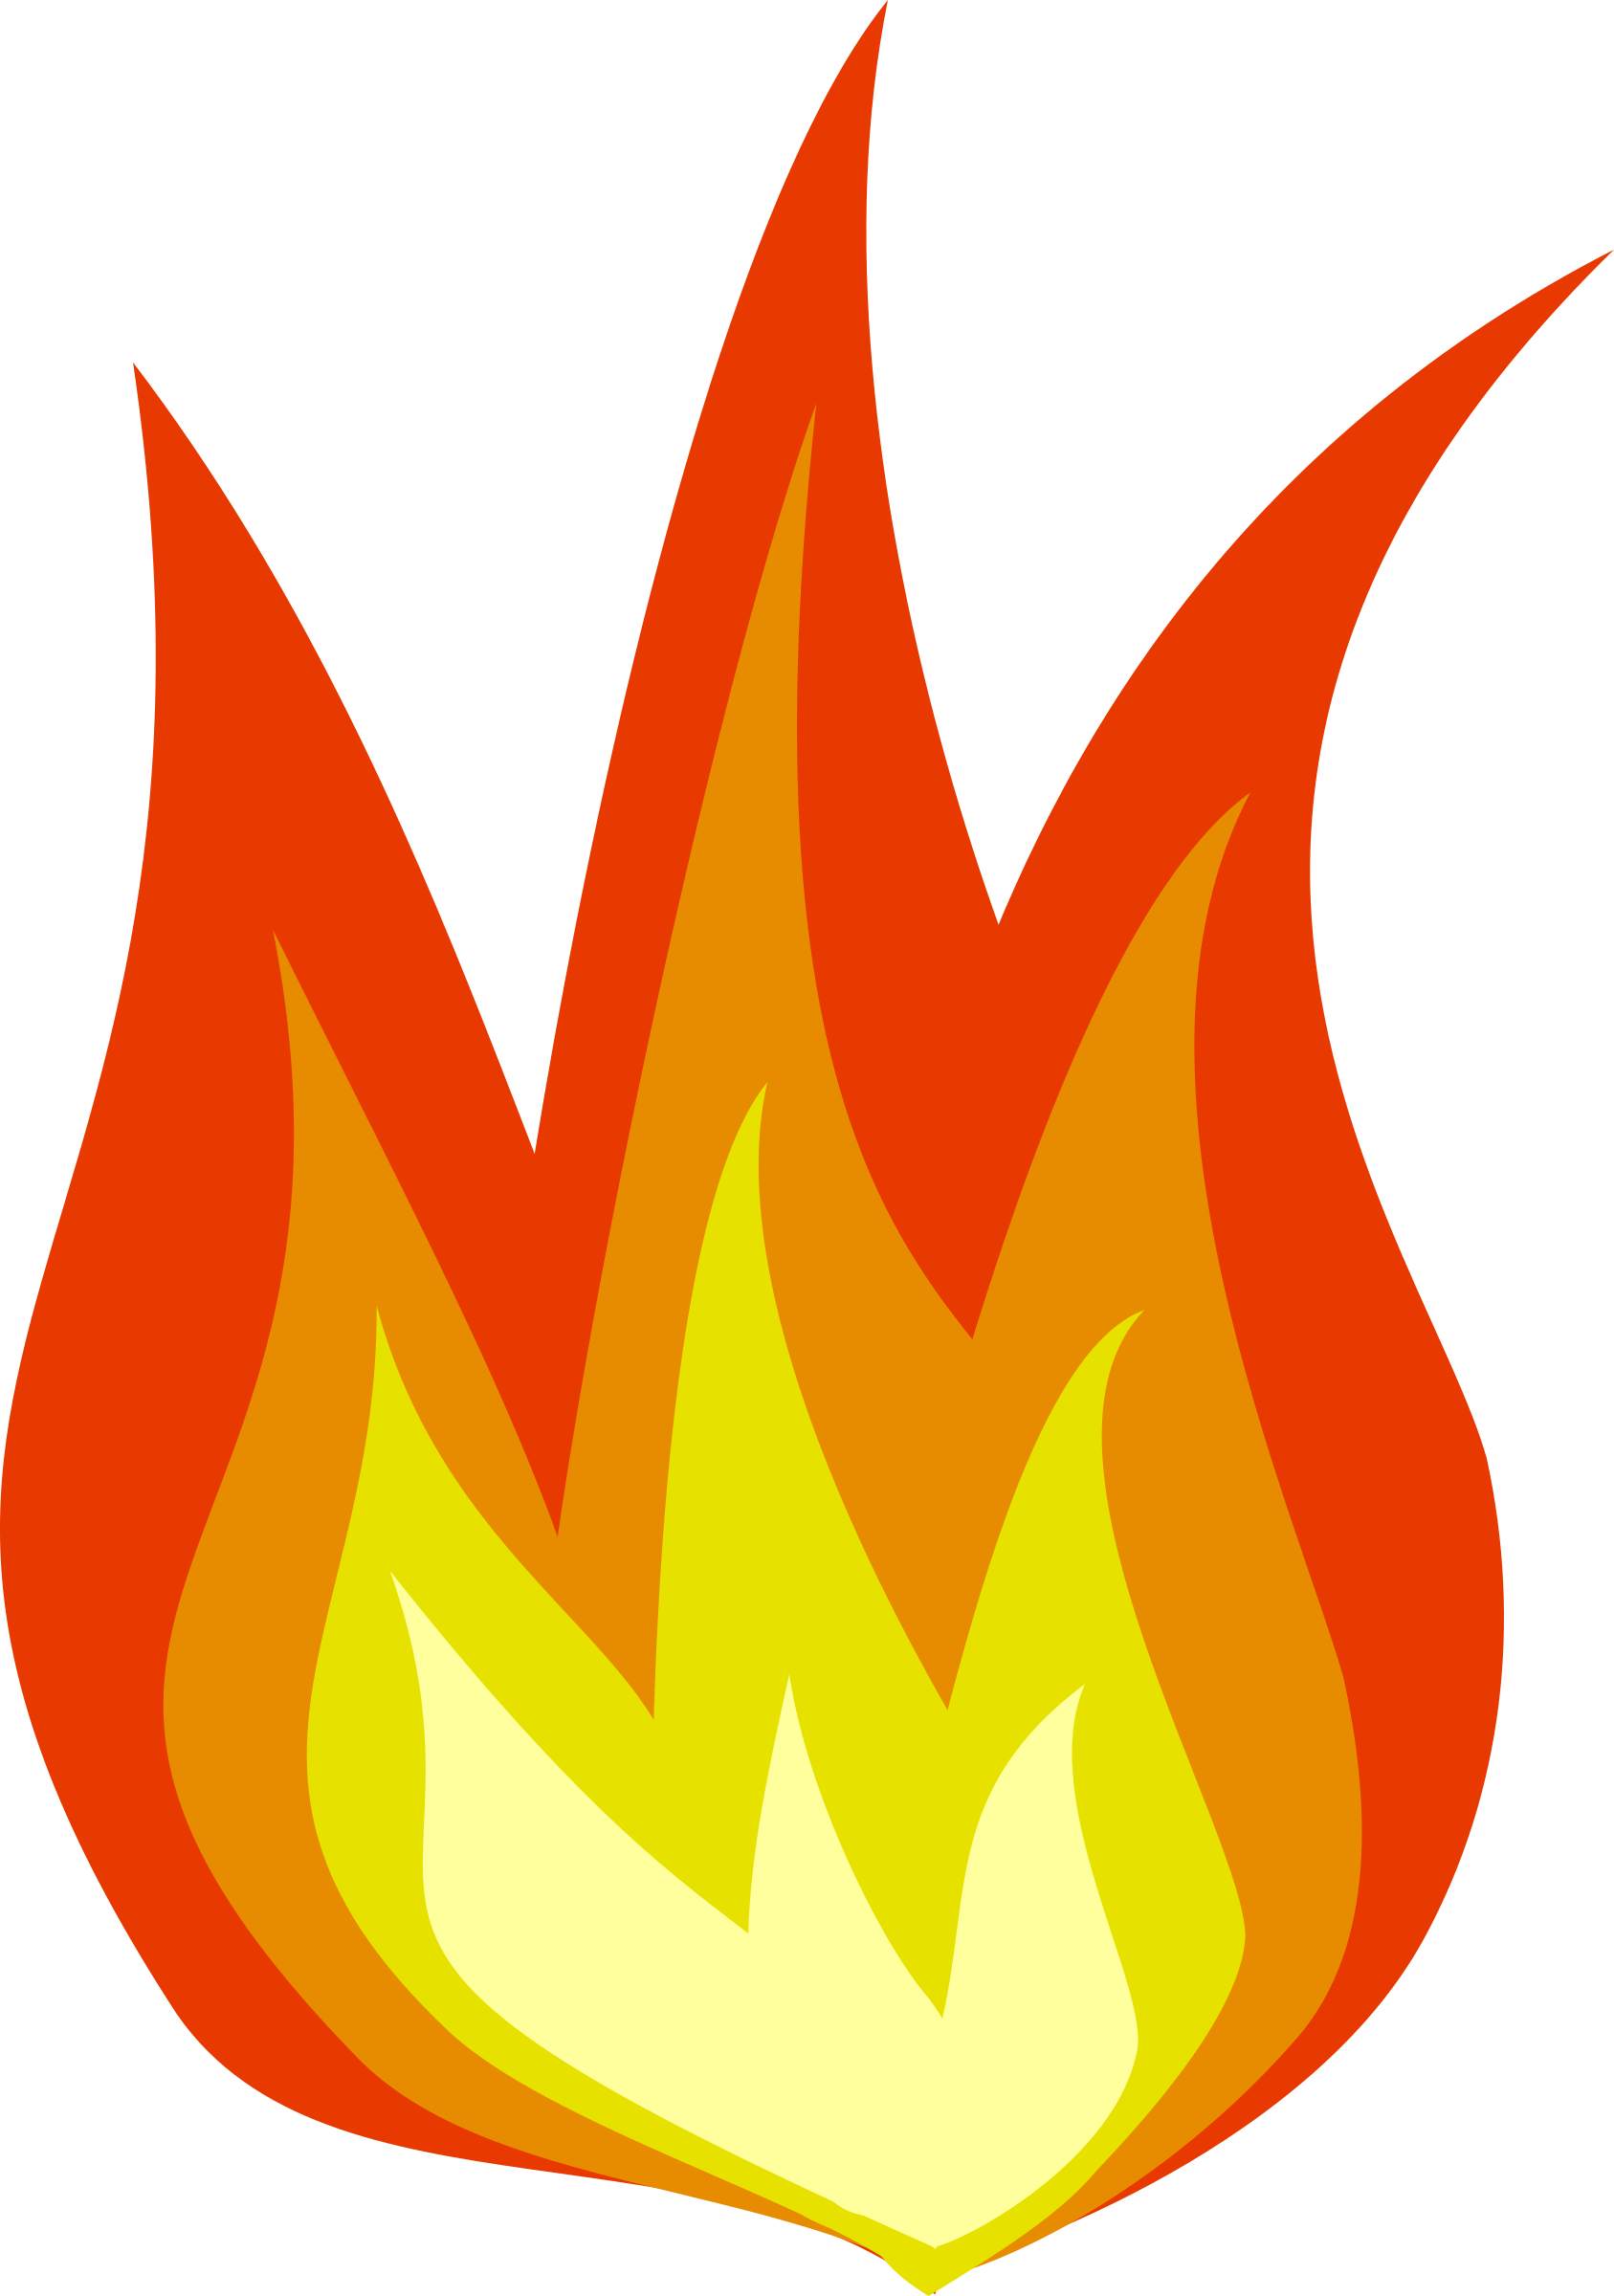 Basketball fire clipart freeuse stock 28+ Collection of Fire Clipart | High quality, free cliparts ... freeuse stock